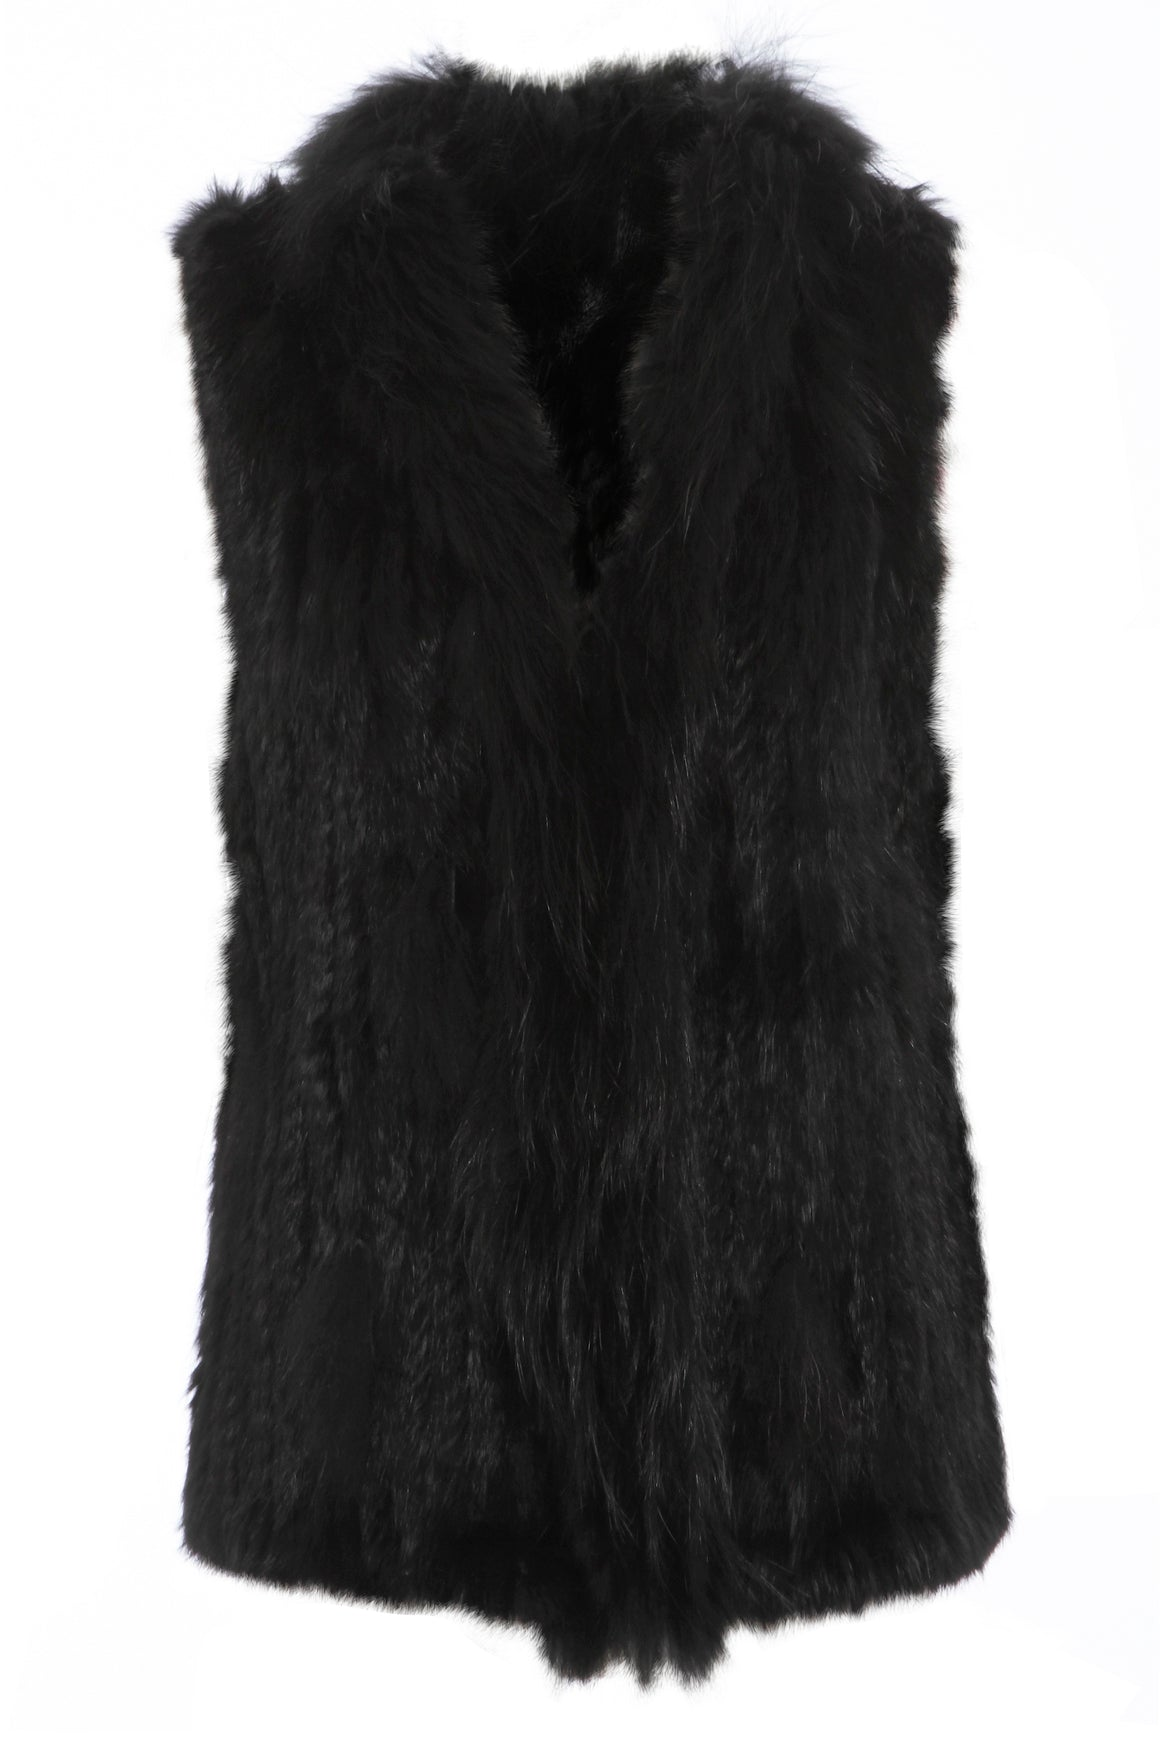 The Classic Black Fur Gilet